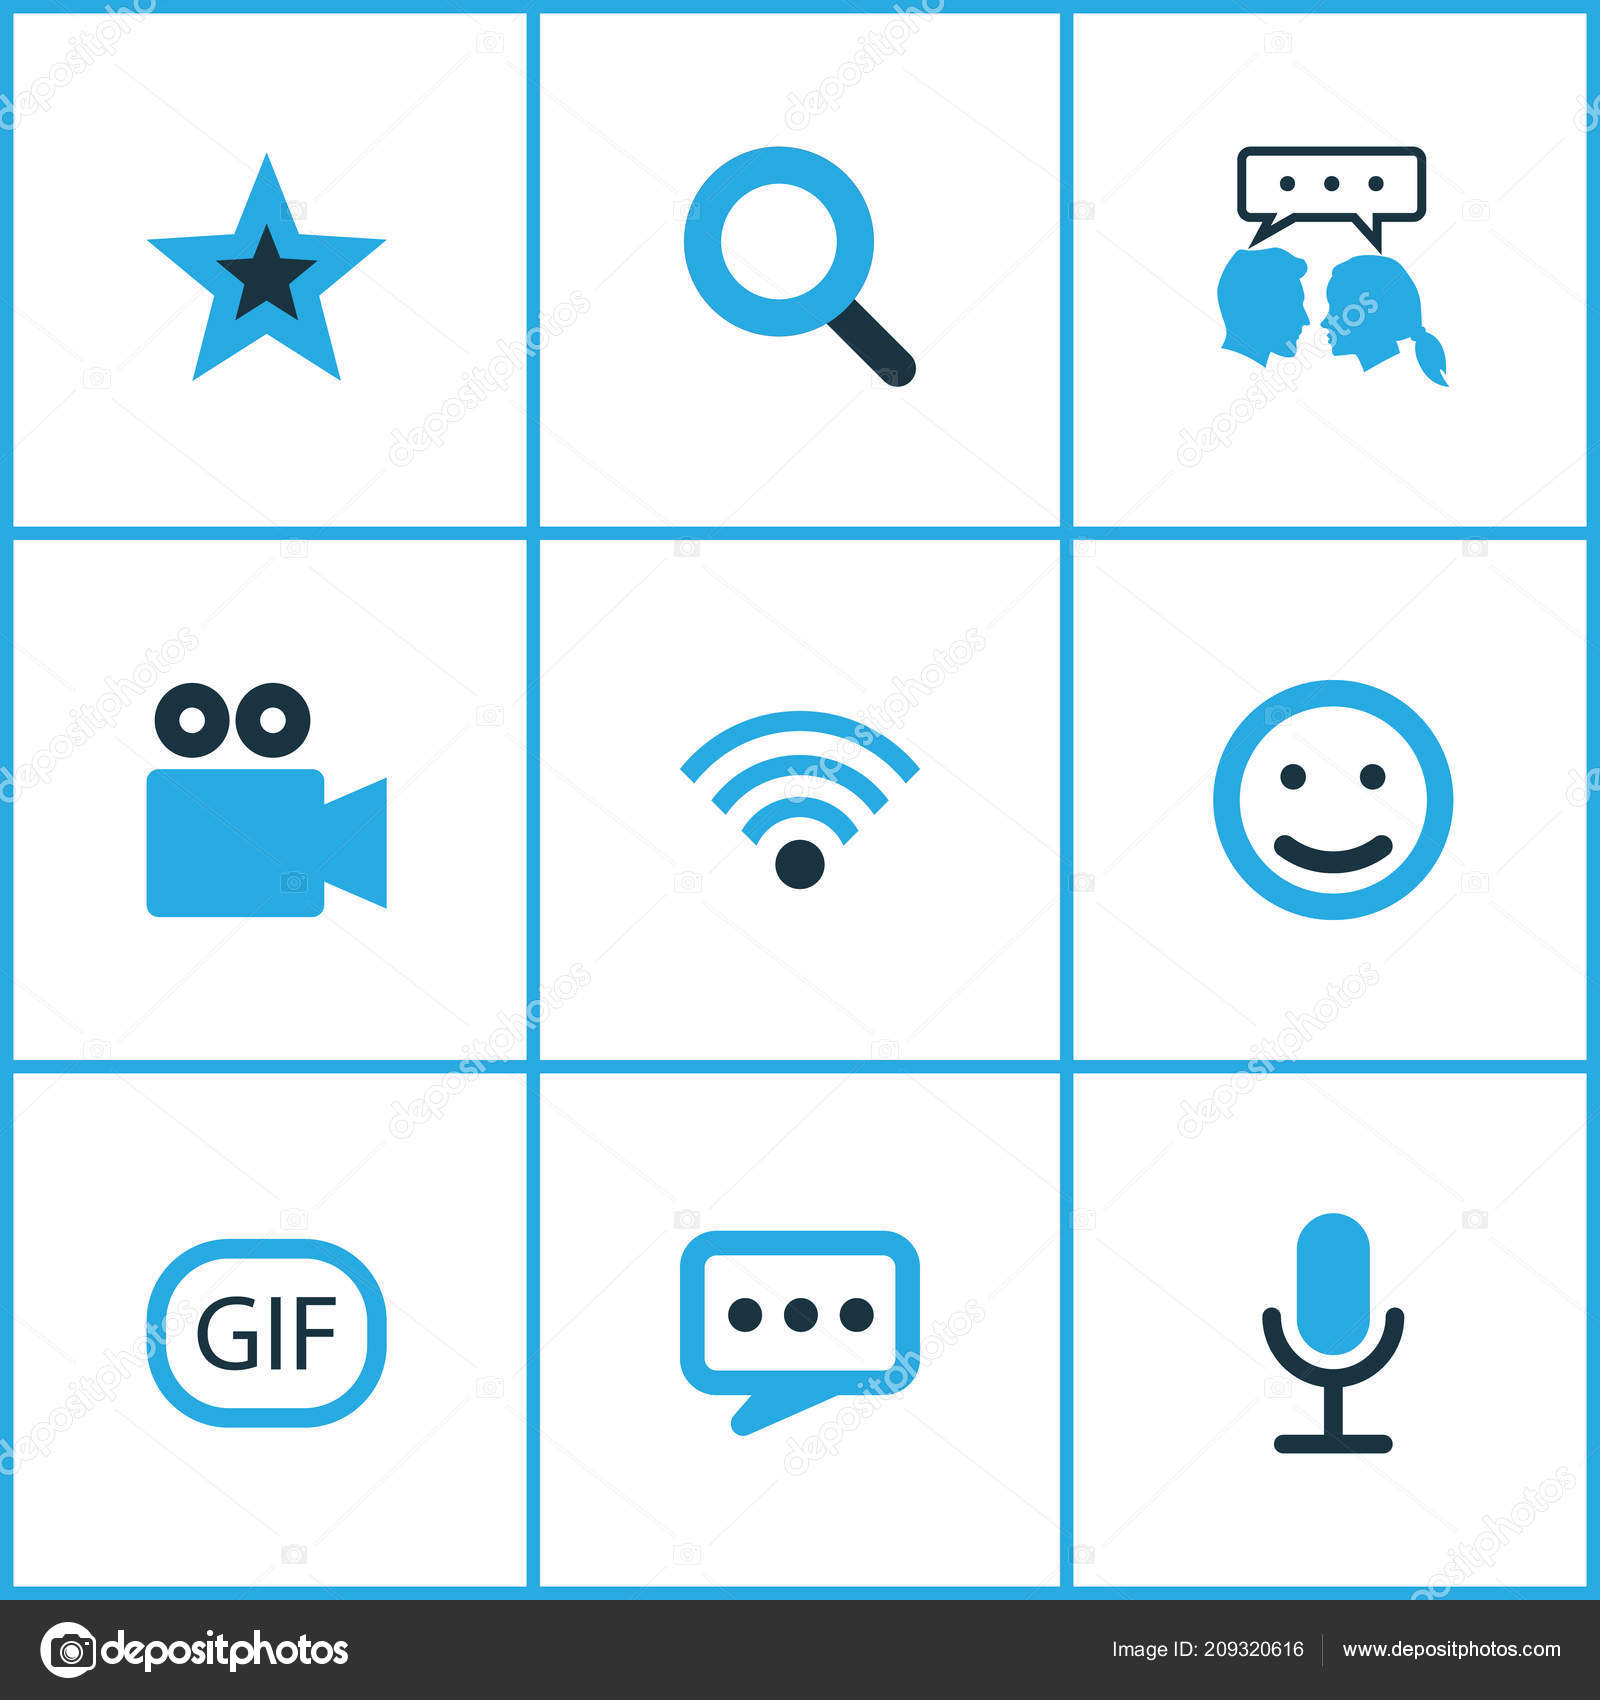 Internet icons colored set with video chat, emoji, gif